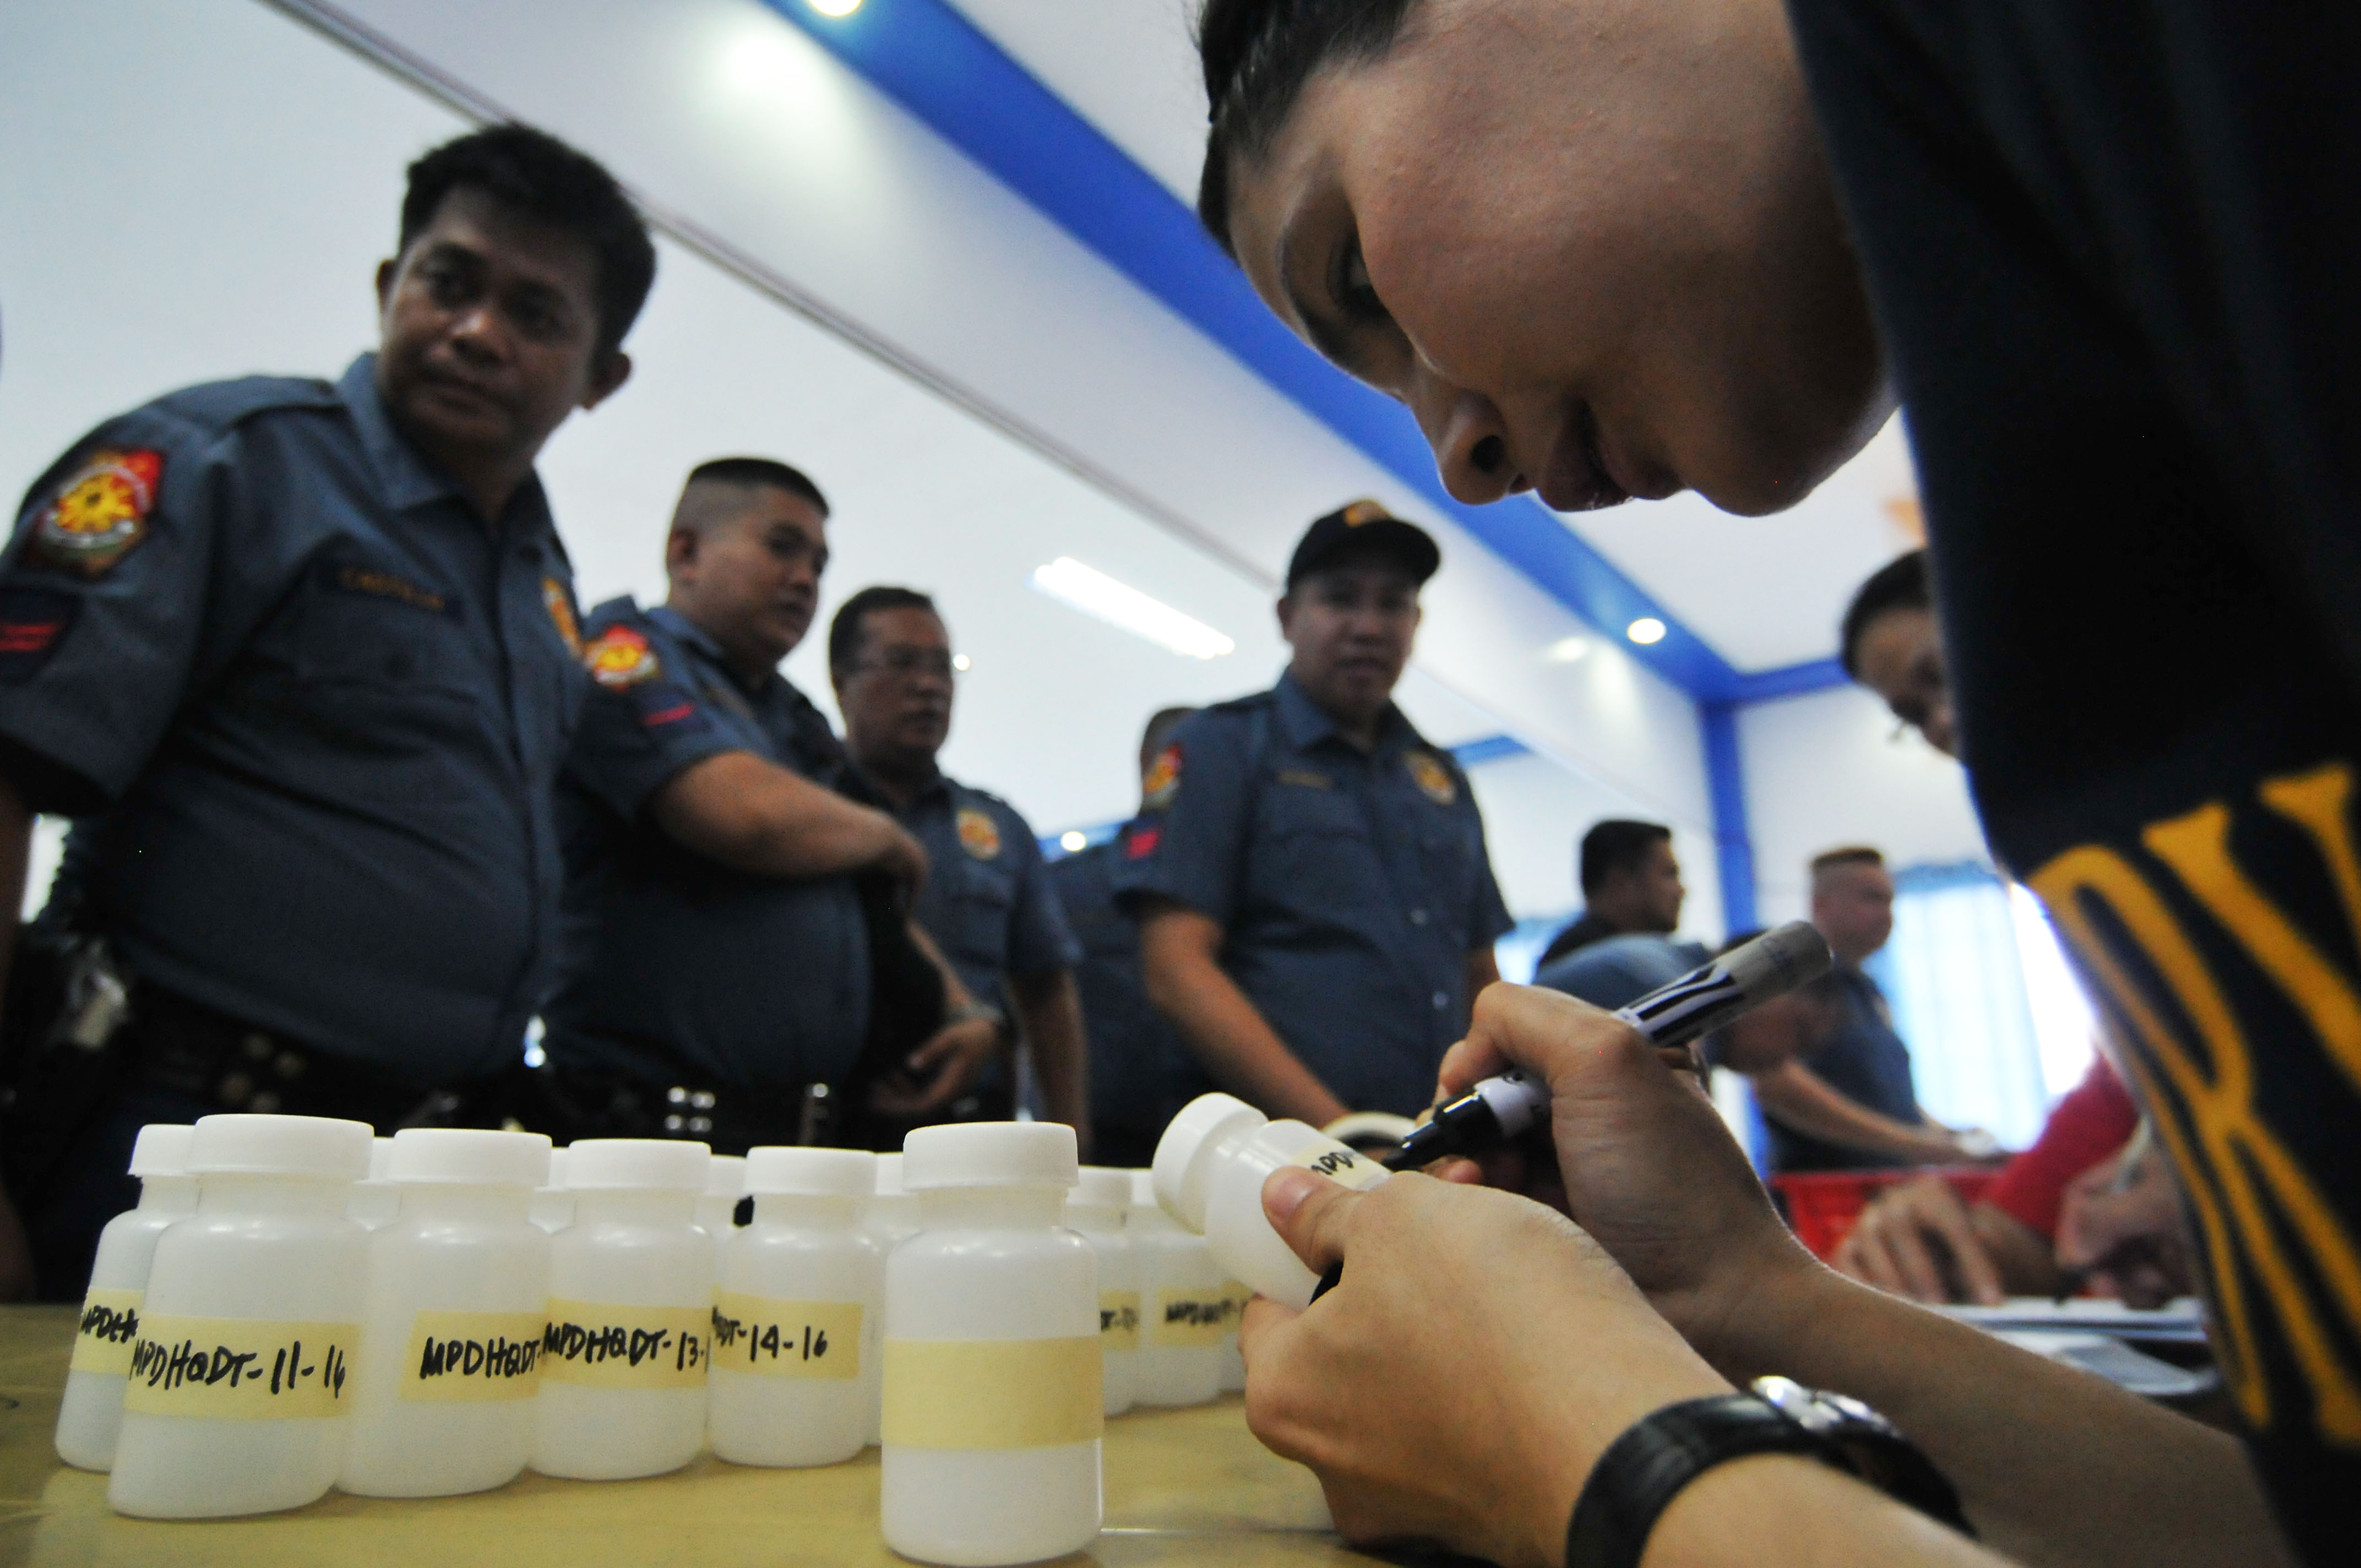 INTERNAL CLEANSE. Members of the Manila Police District queue for canisters as they undergo a random drug test at the MPD headquarters in Manila on Friday, July 1, 2016. File photo by Ben Nabong/Rappler